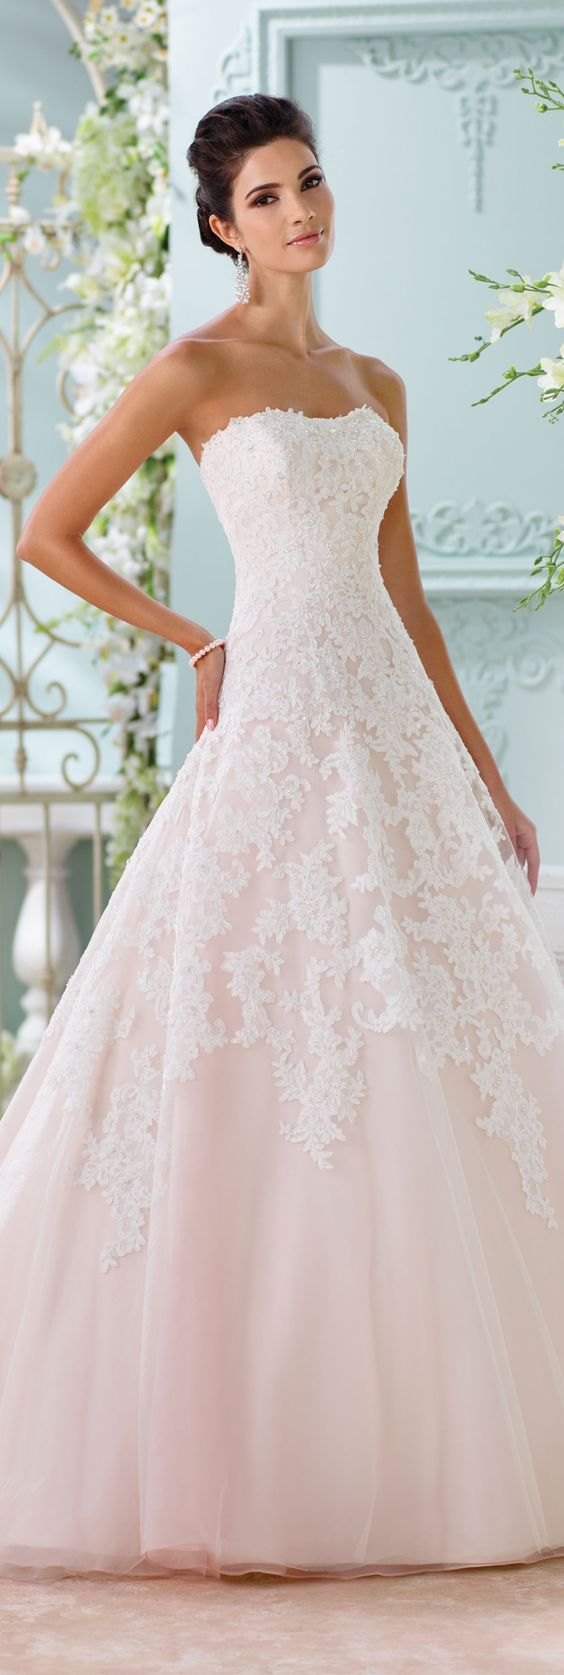 The David Tutera for Mon Cheri Spring 2016 Wedding Gown Collection - Style No. 116202 Soleleil  #laceweddingdresses: